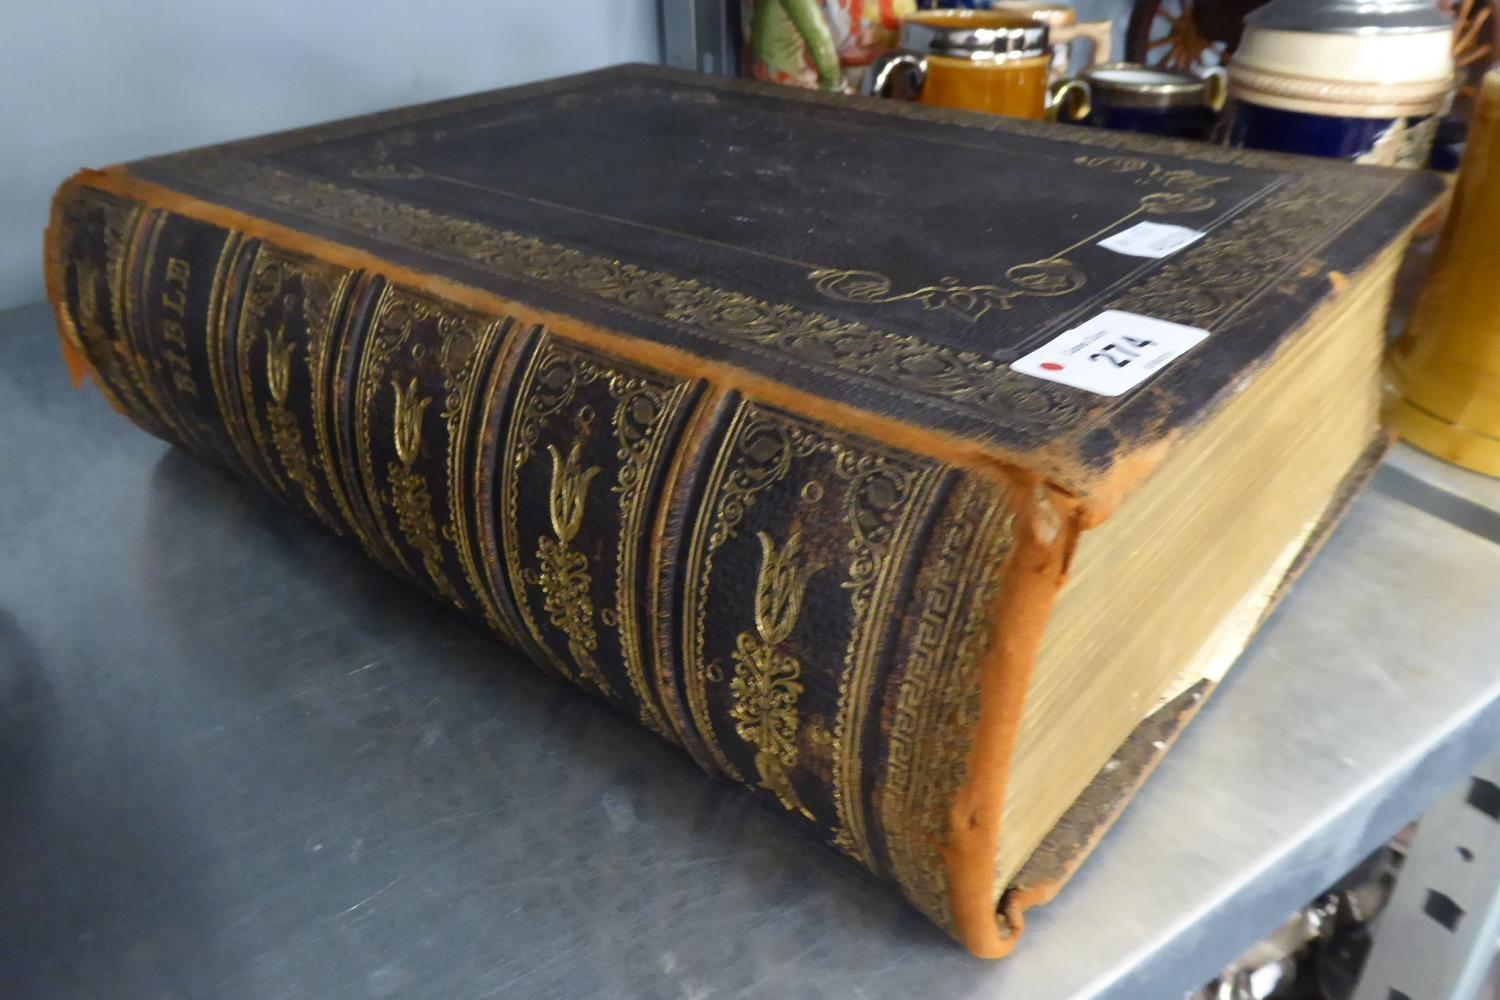 Lot 274 - VICTORIAN 'BROWNS' LARGE FAMILY BIBLE, ILLUSTRATED WITH COLOUR PLATES, TOOLED AND GILT MOROCCO